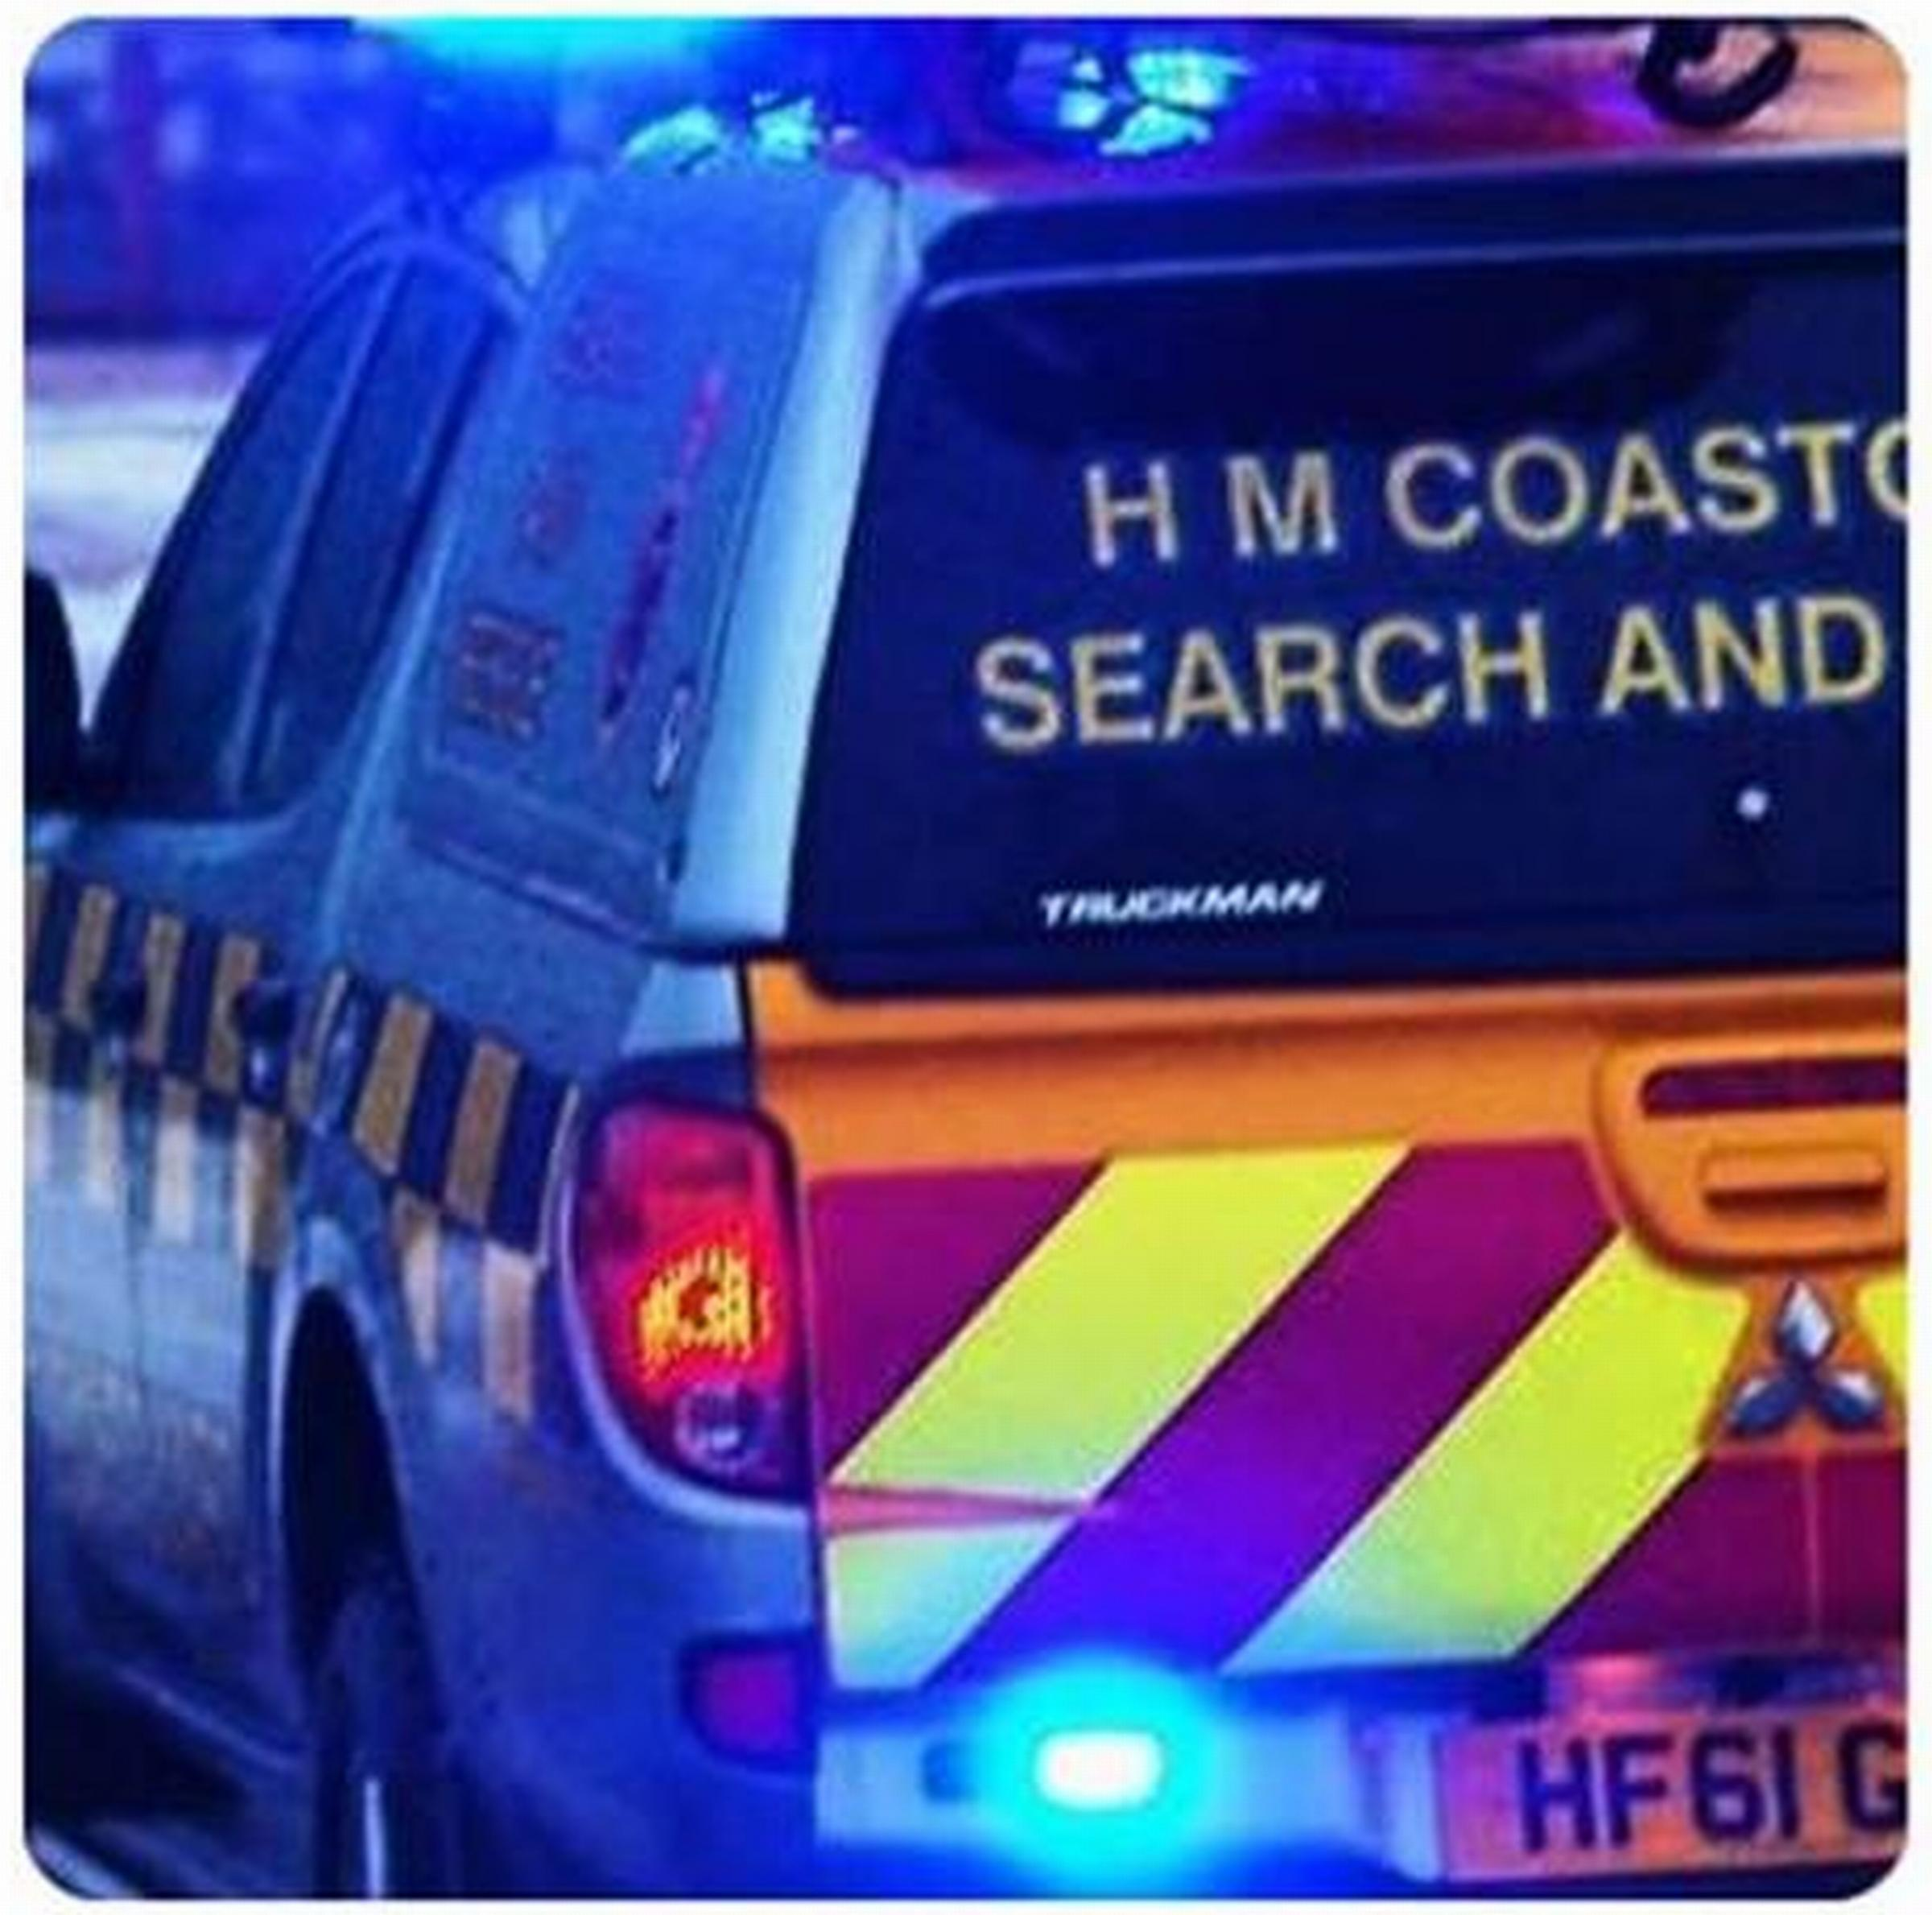 COASTGUARD ROUND-UP: Men thrown in sea after dinghy collides with ferry